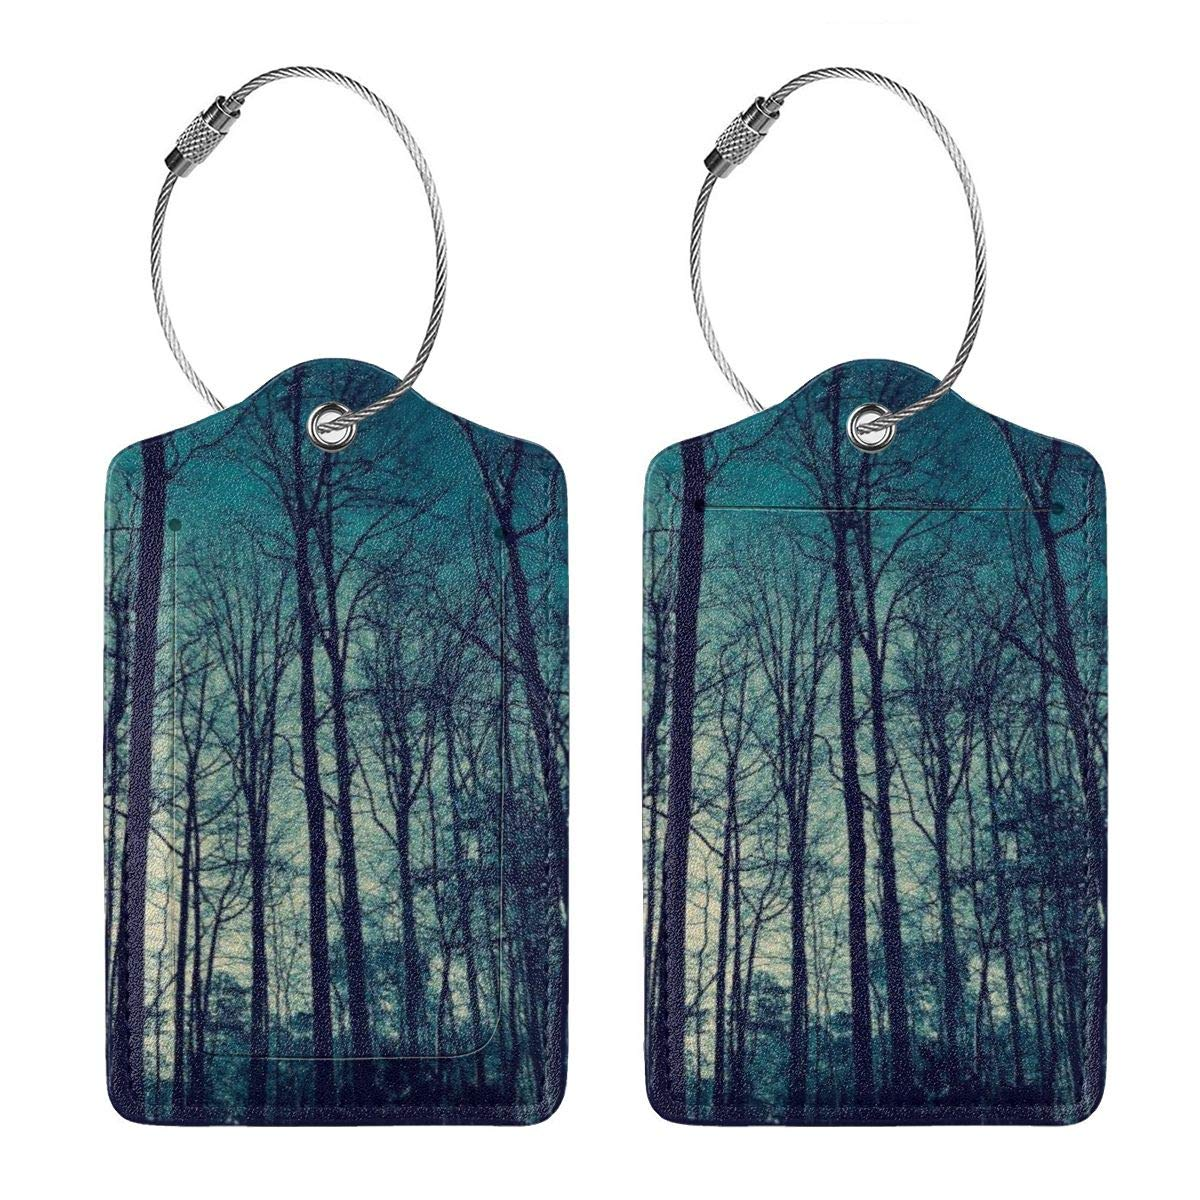 Blue Sky High Trees Travel Luggage Tags With Full Privacy Cover Leather Case And Stainless Steel Loop